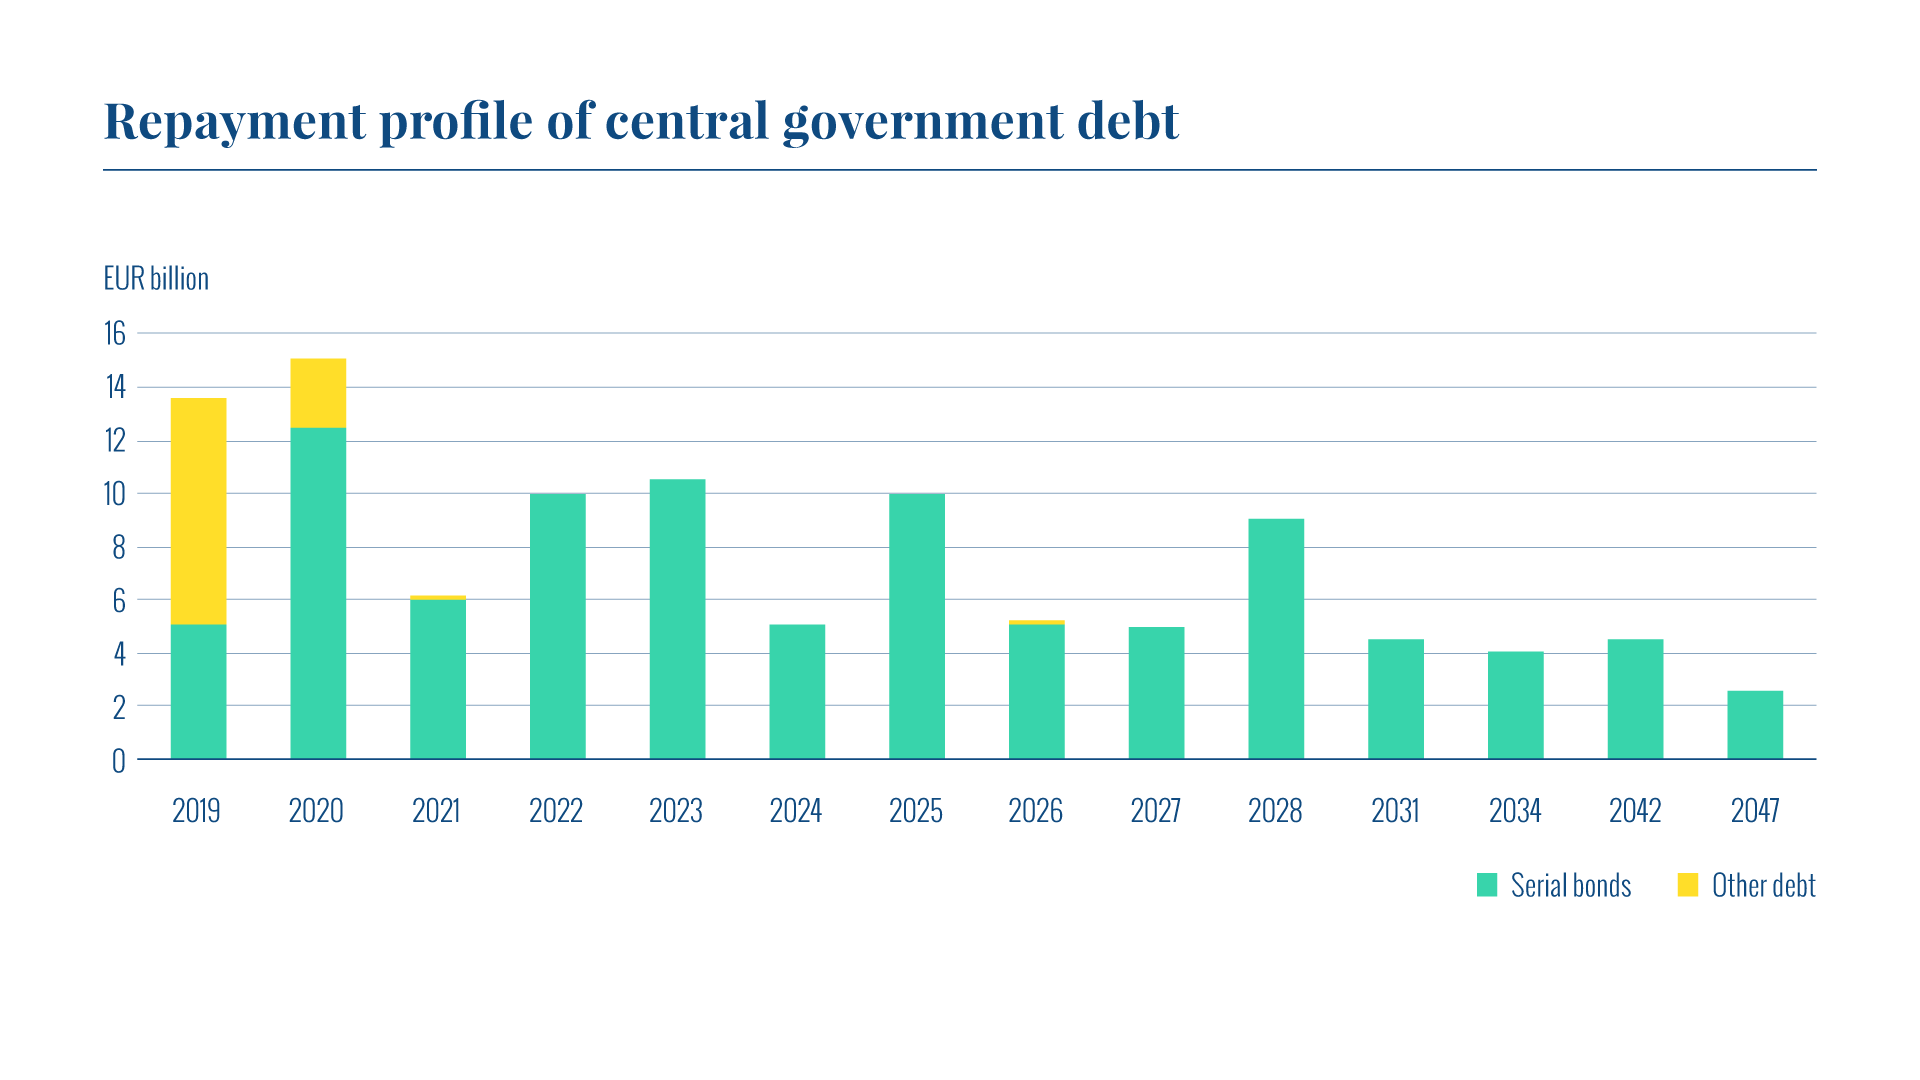 The graph shows the repayment profile of central government debt.